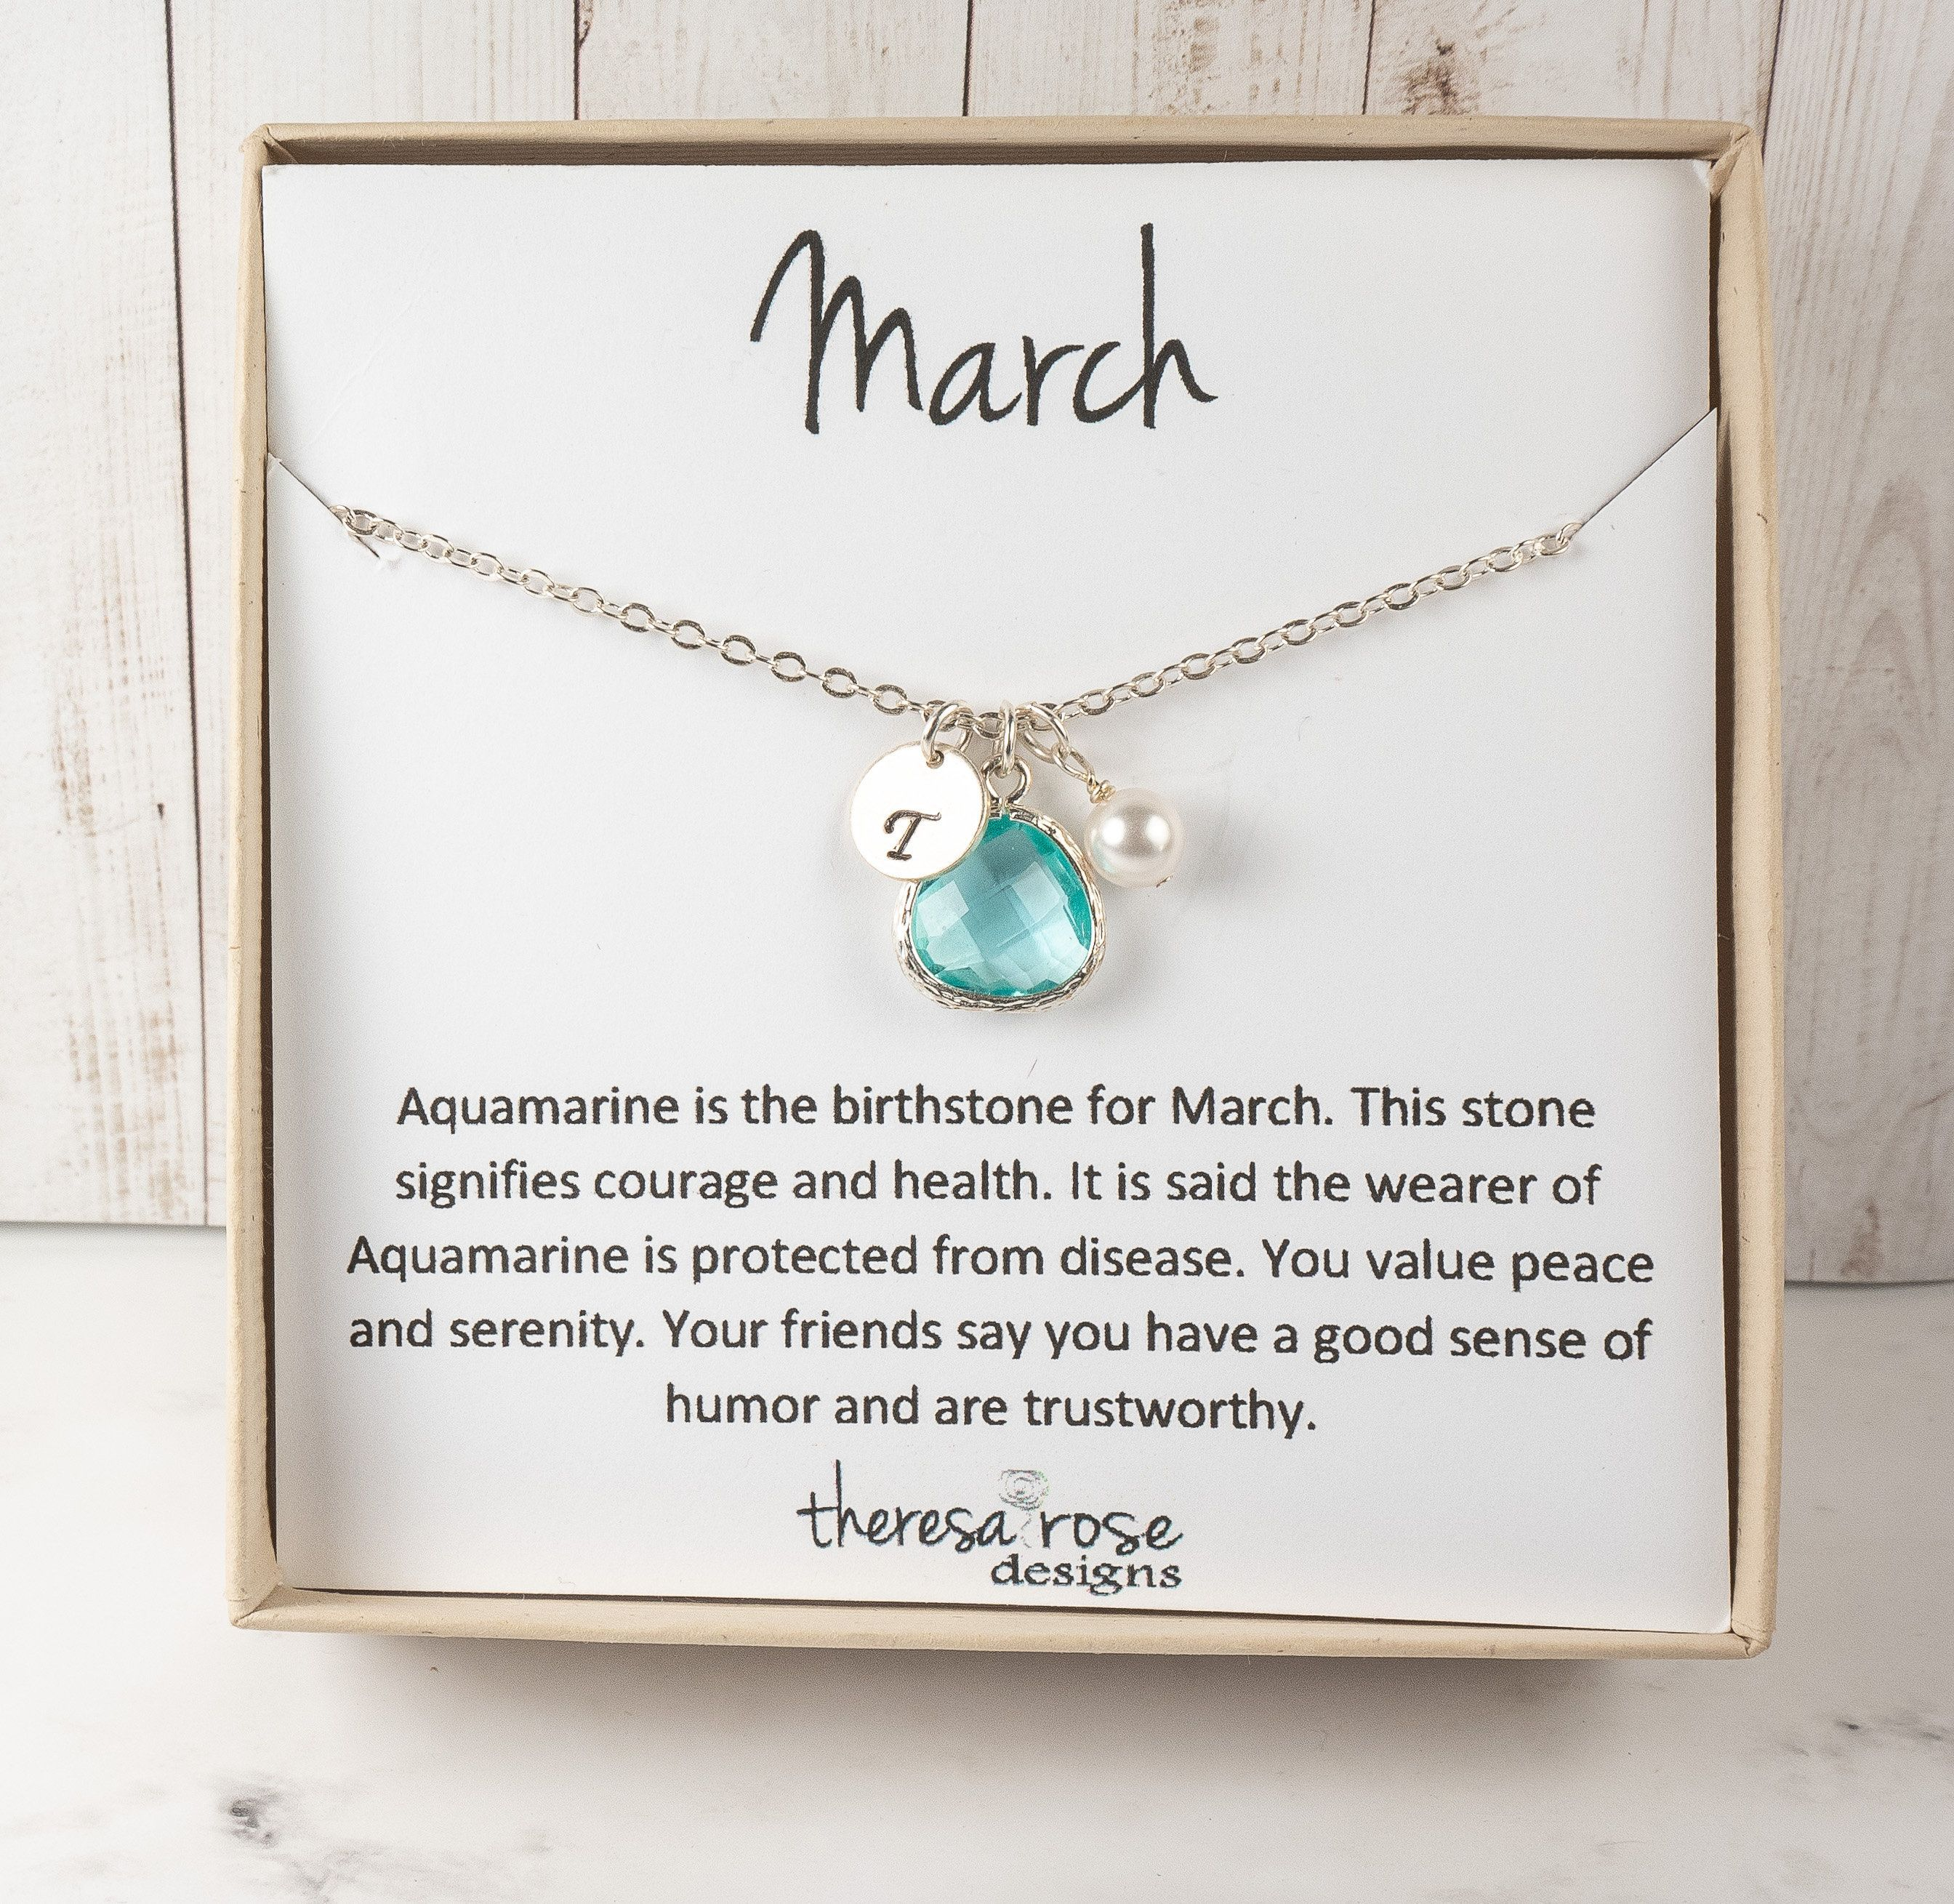 Sterling Silver Necklace with Aquamarine /& Silver Drop Charm March Birthstone